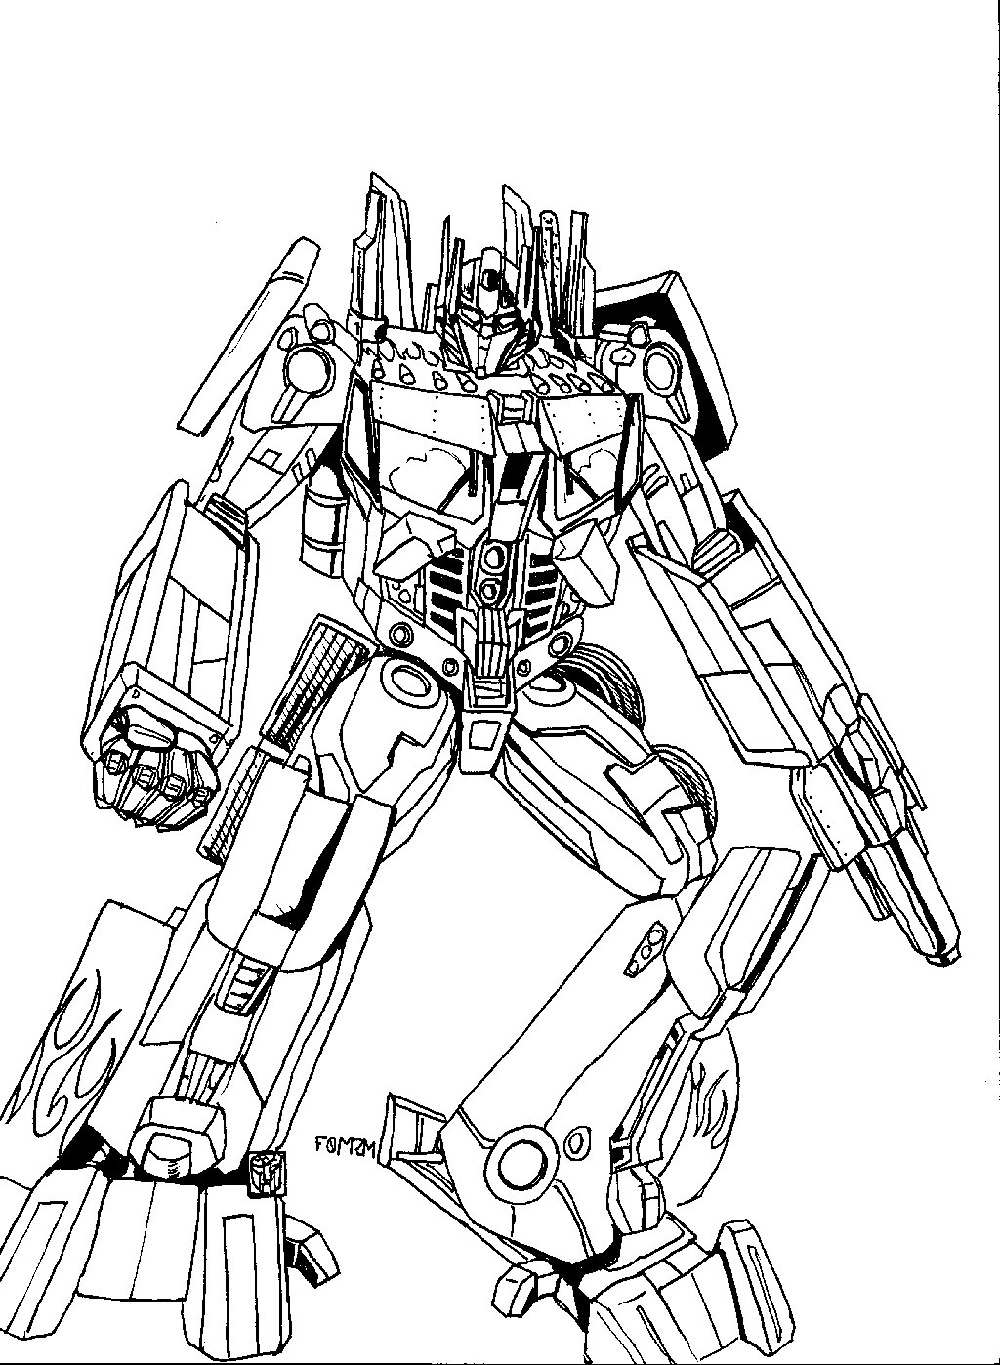 bumblebee transformer coloring pictures bumblebee car transformers coloring page wecoloringpage transformer pictures bumblebee coloring